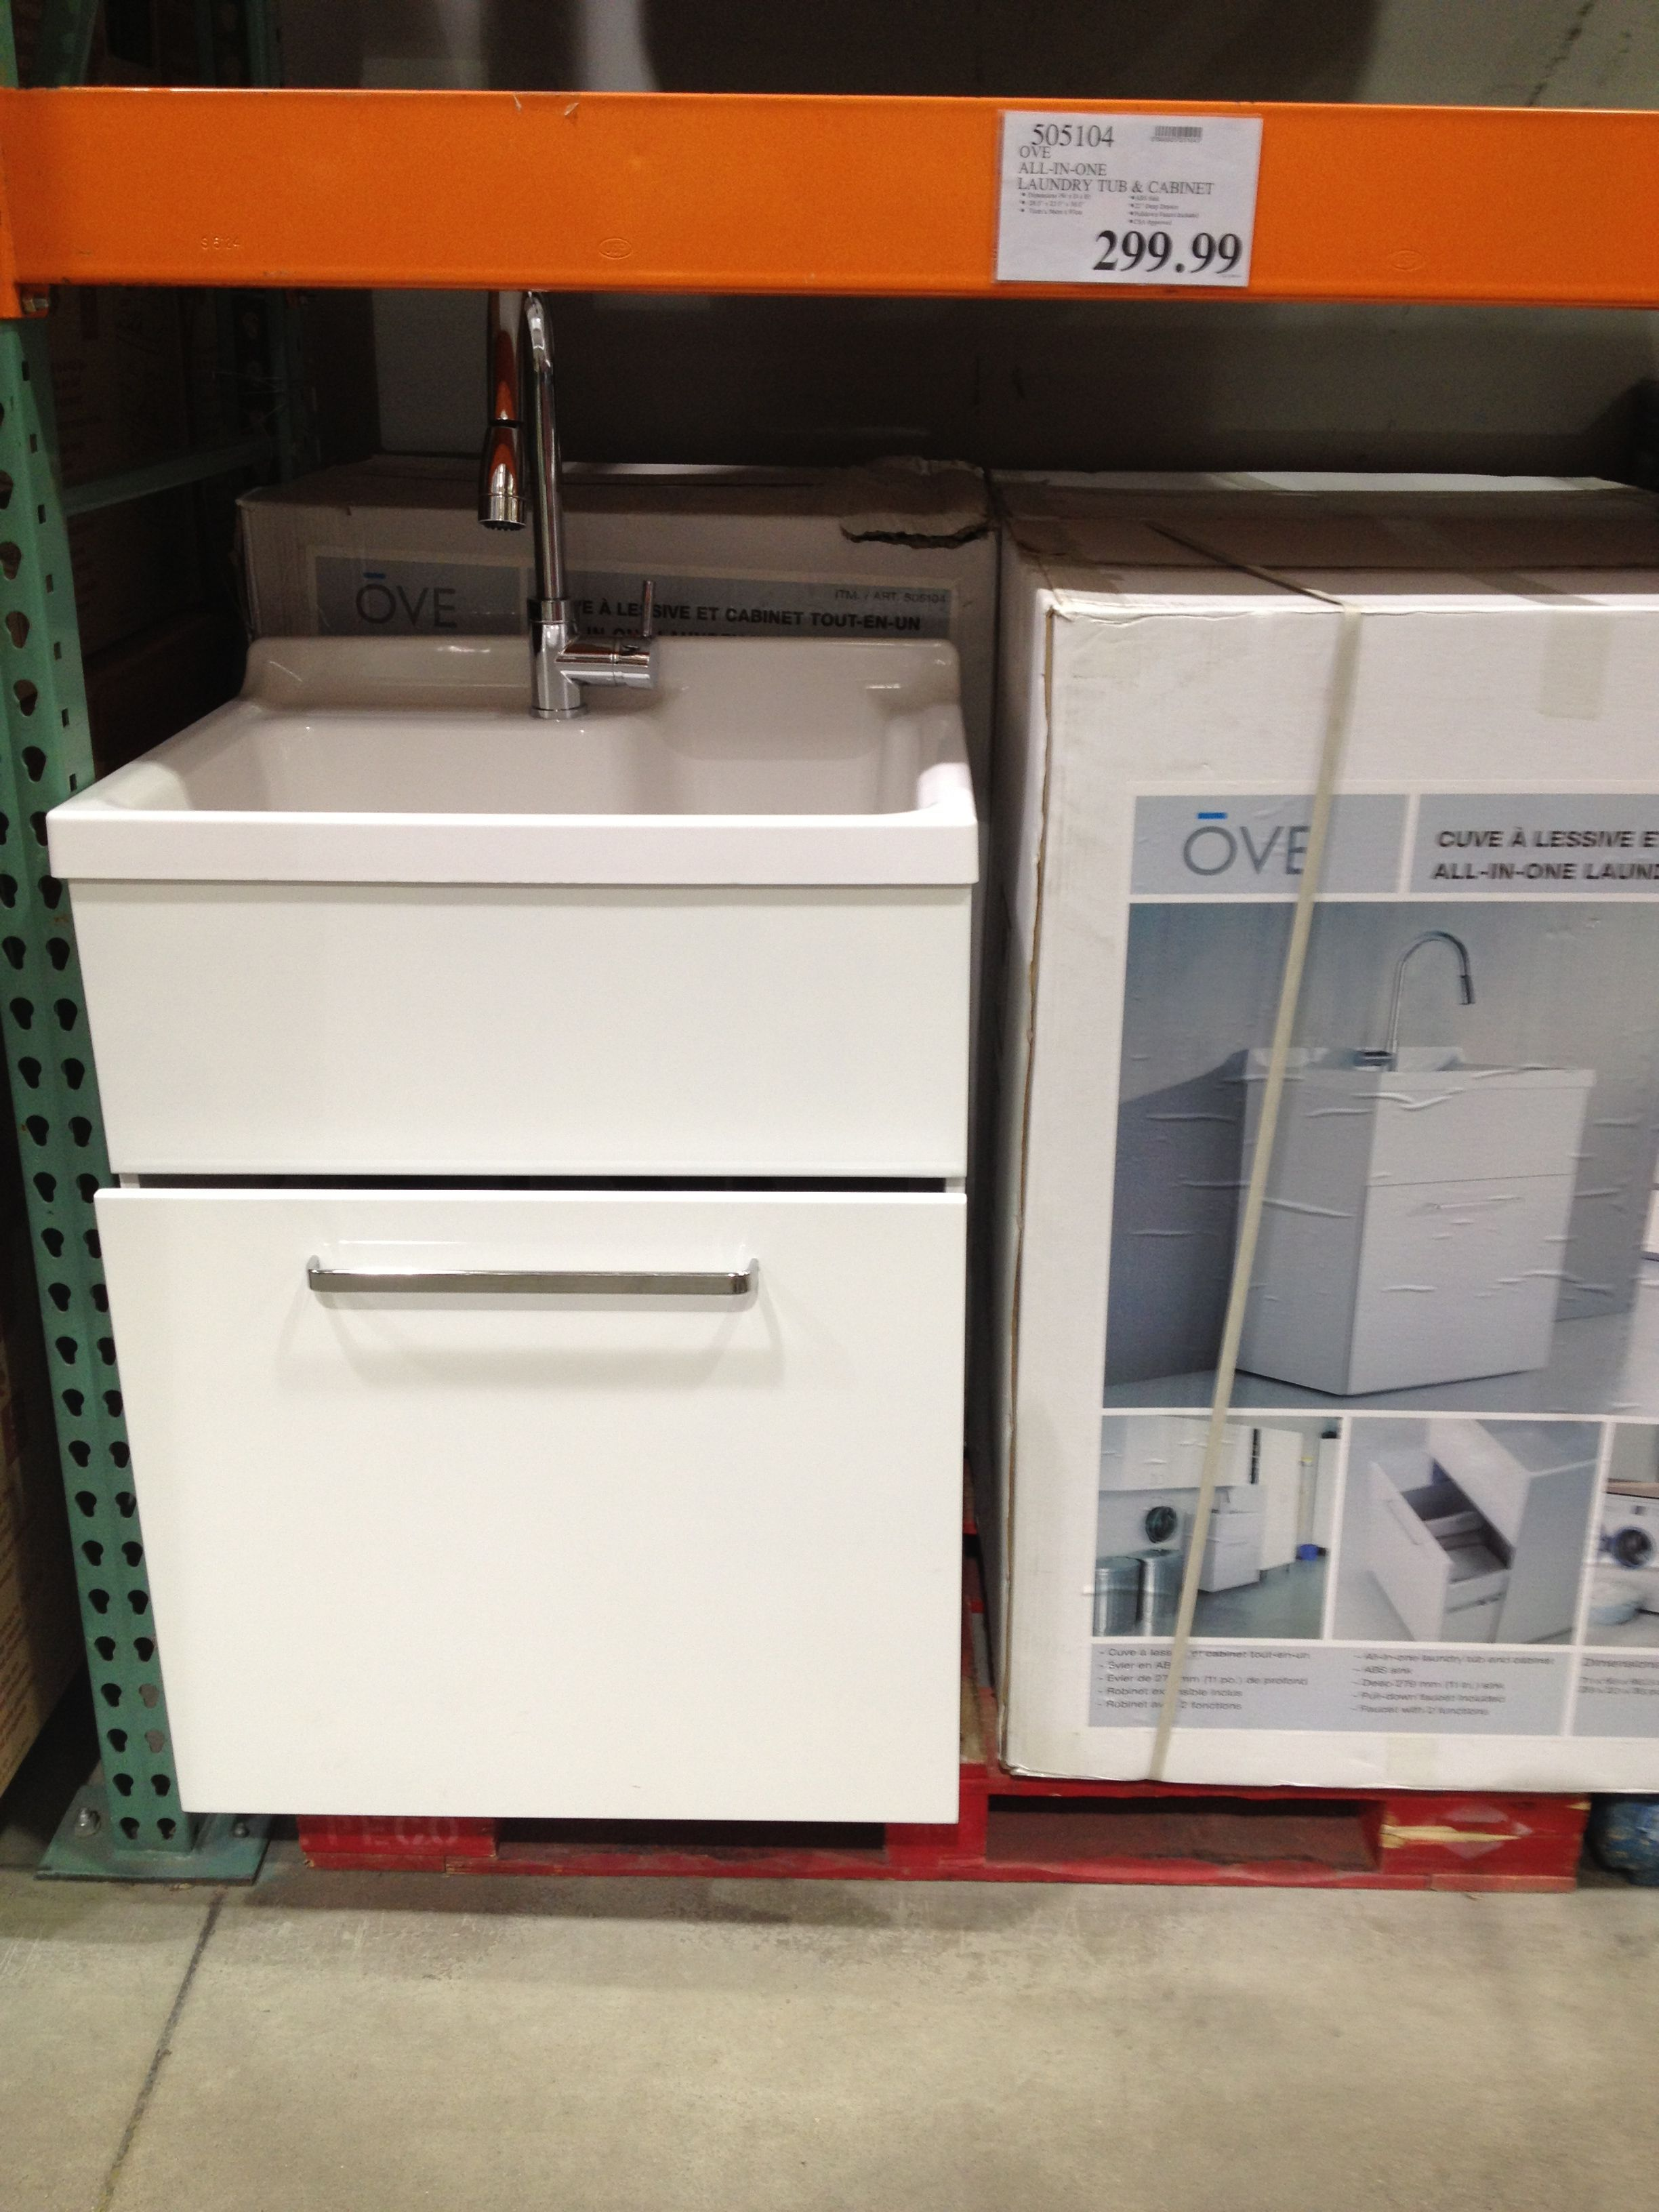 COSTCO $299 Utility sink for garage bathroom. Not first choice ...